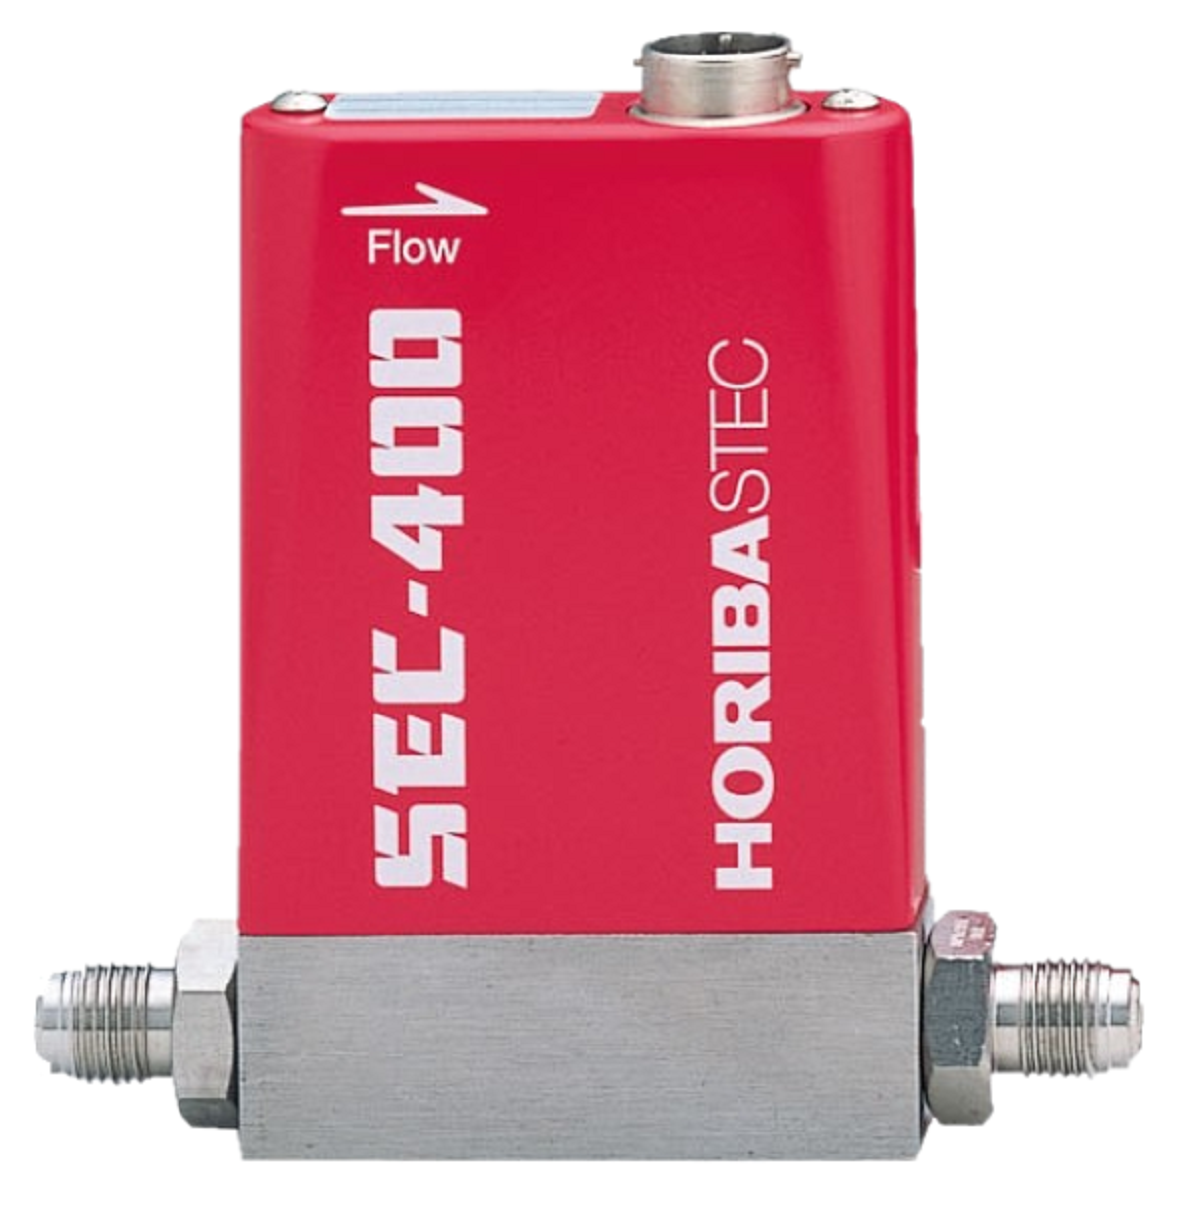 Mass flow controllers SEC-400 series